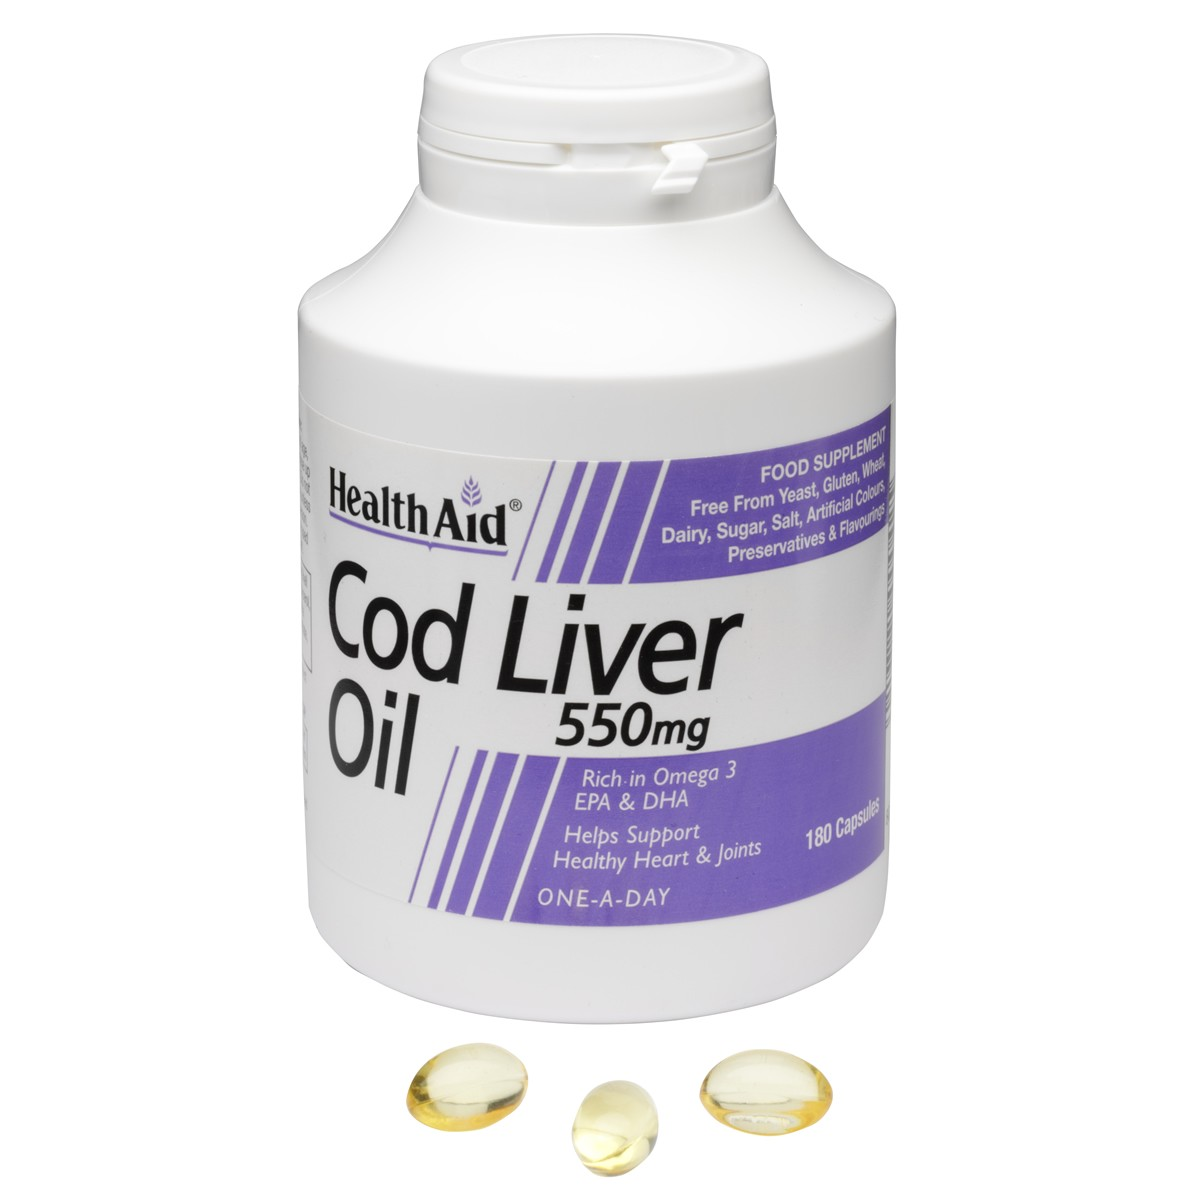 HealthAid Cod Liver Oil 550mg Capsules